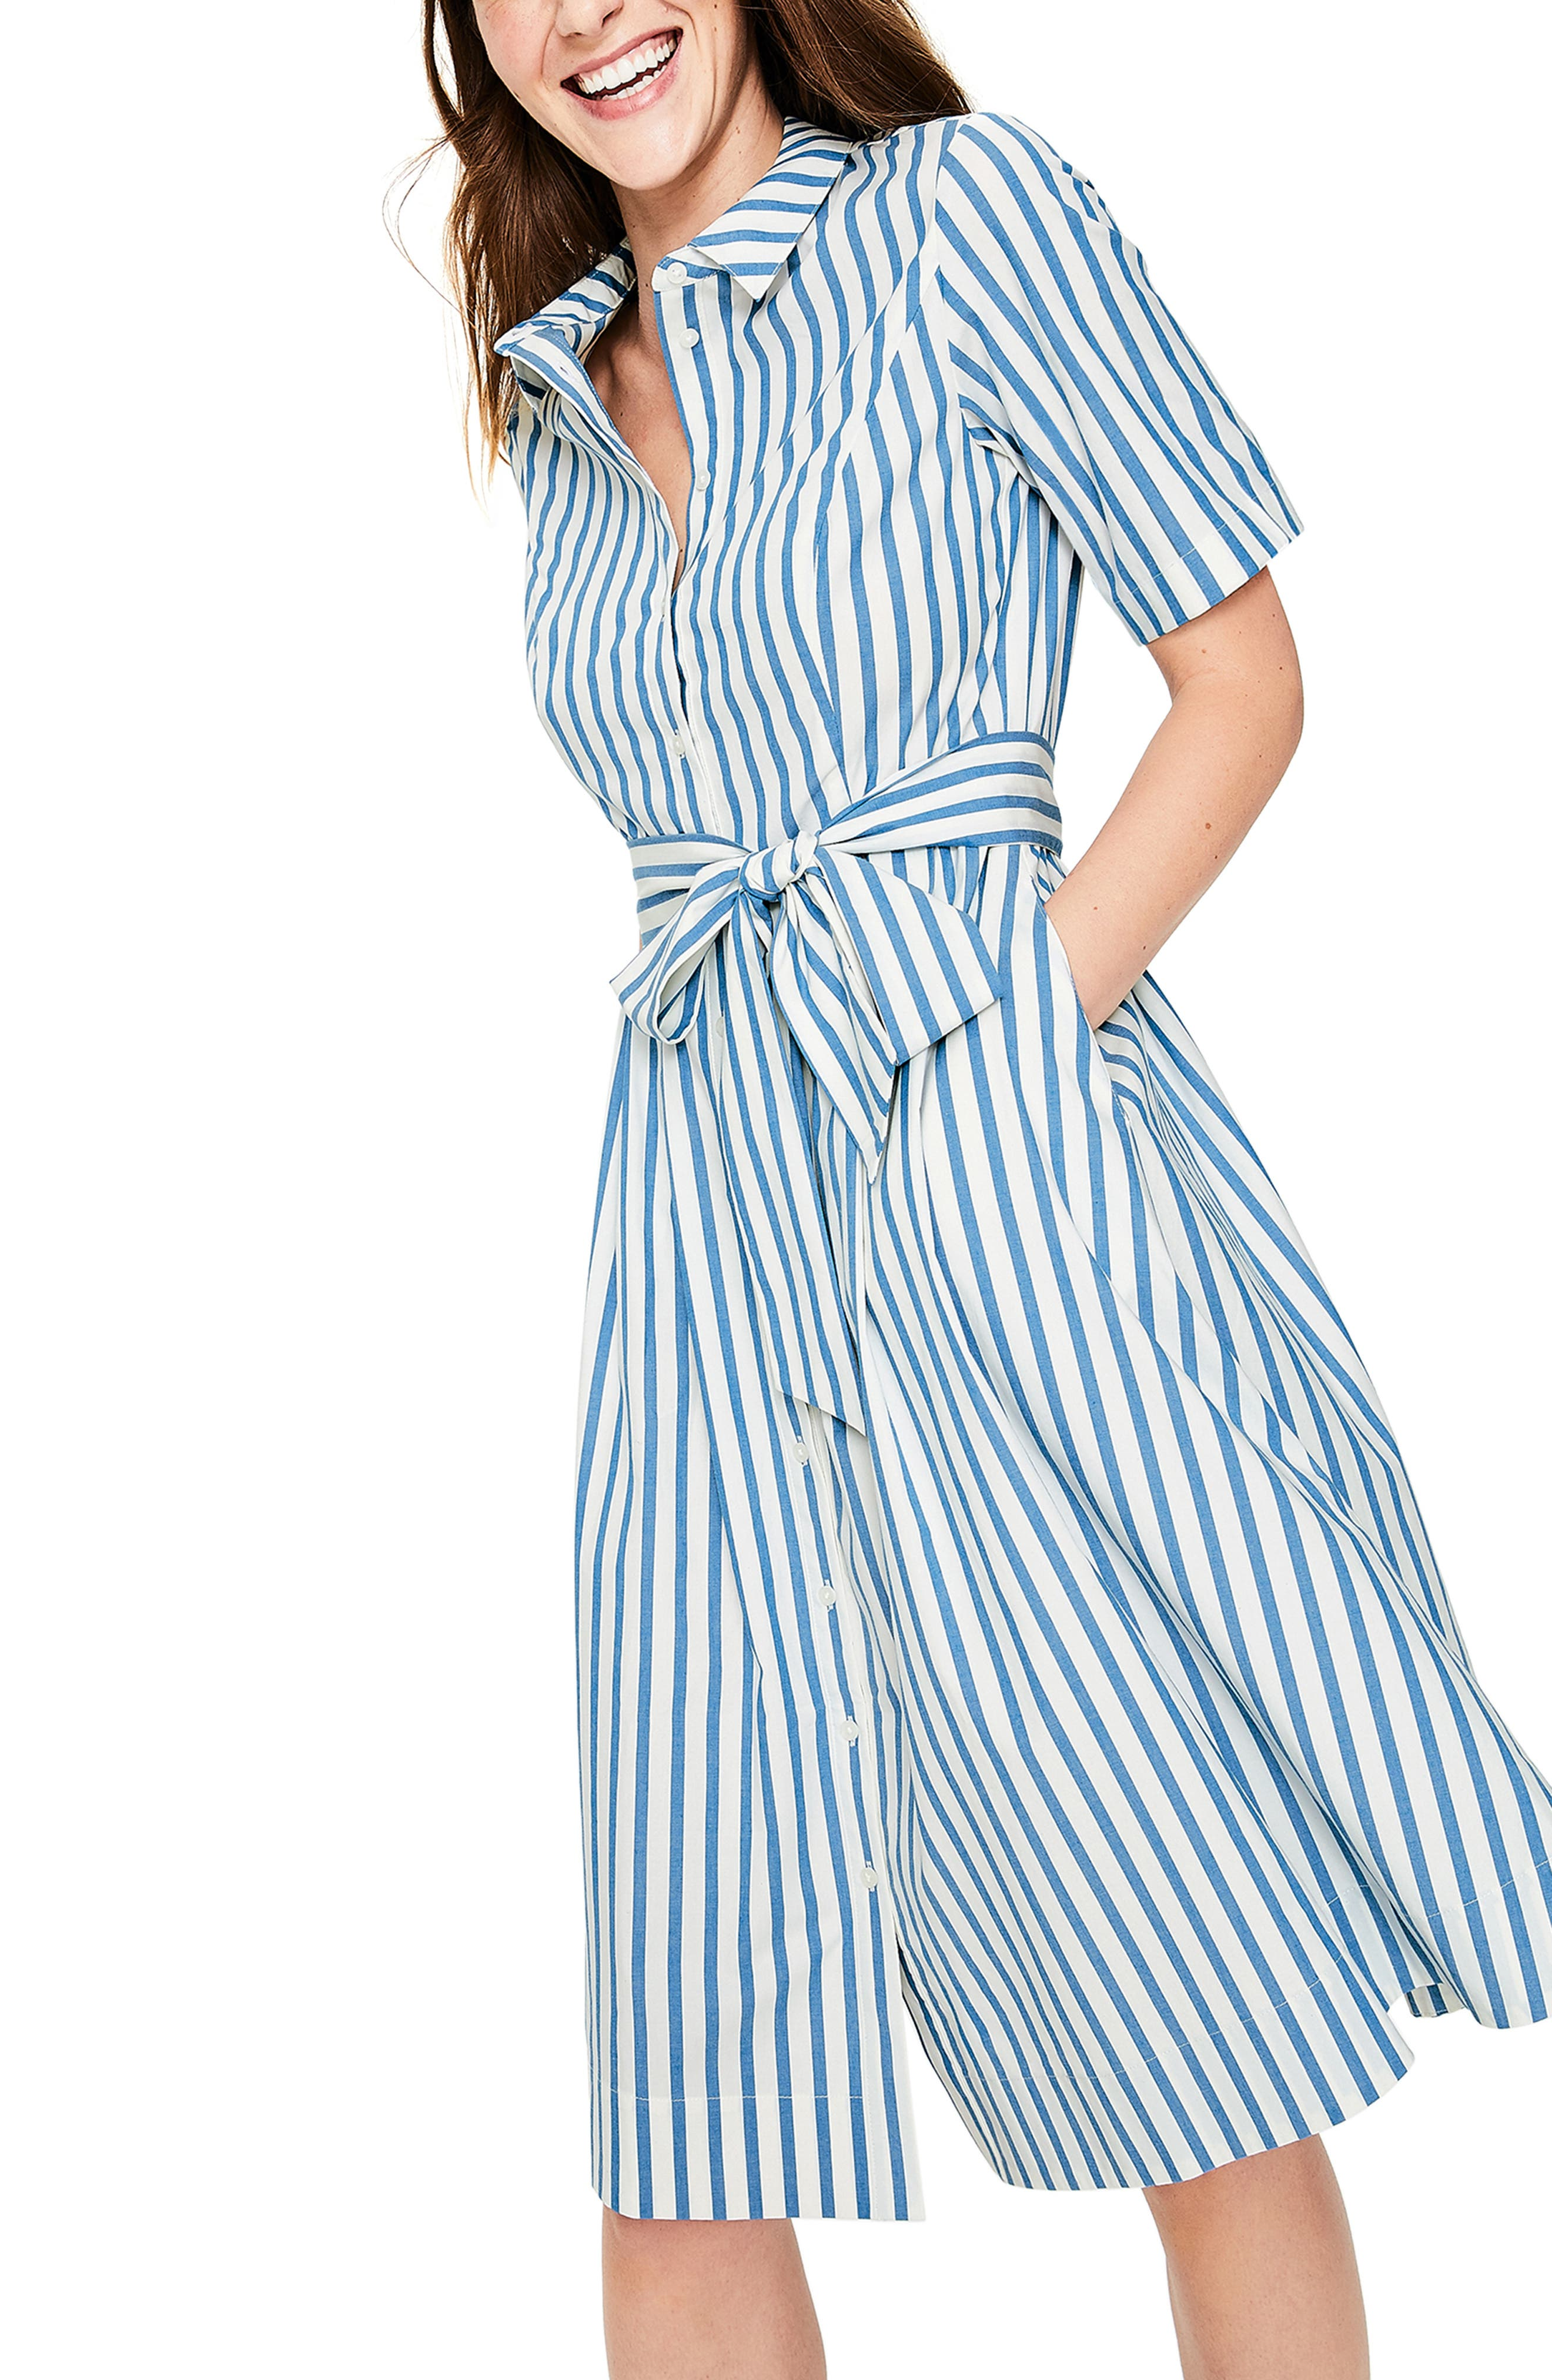 Anastasia Tie Front Shirtdress,                         Main,                         color, IVORY AND CYAN STRIPE